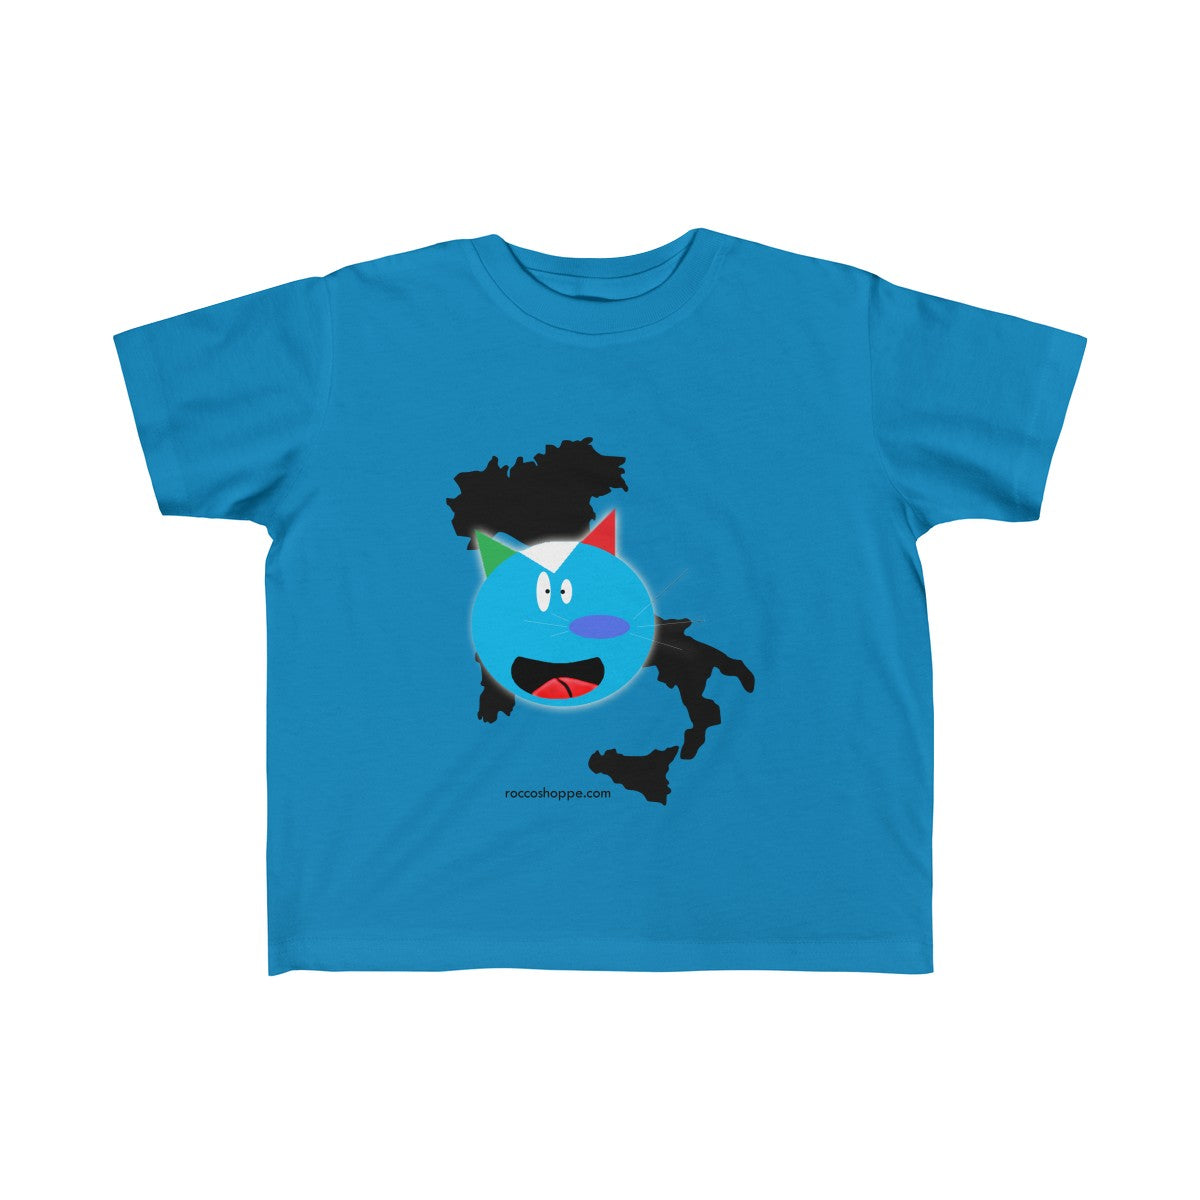 Rocco's Pal Squigi Kid's Tee